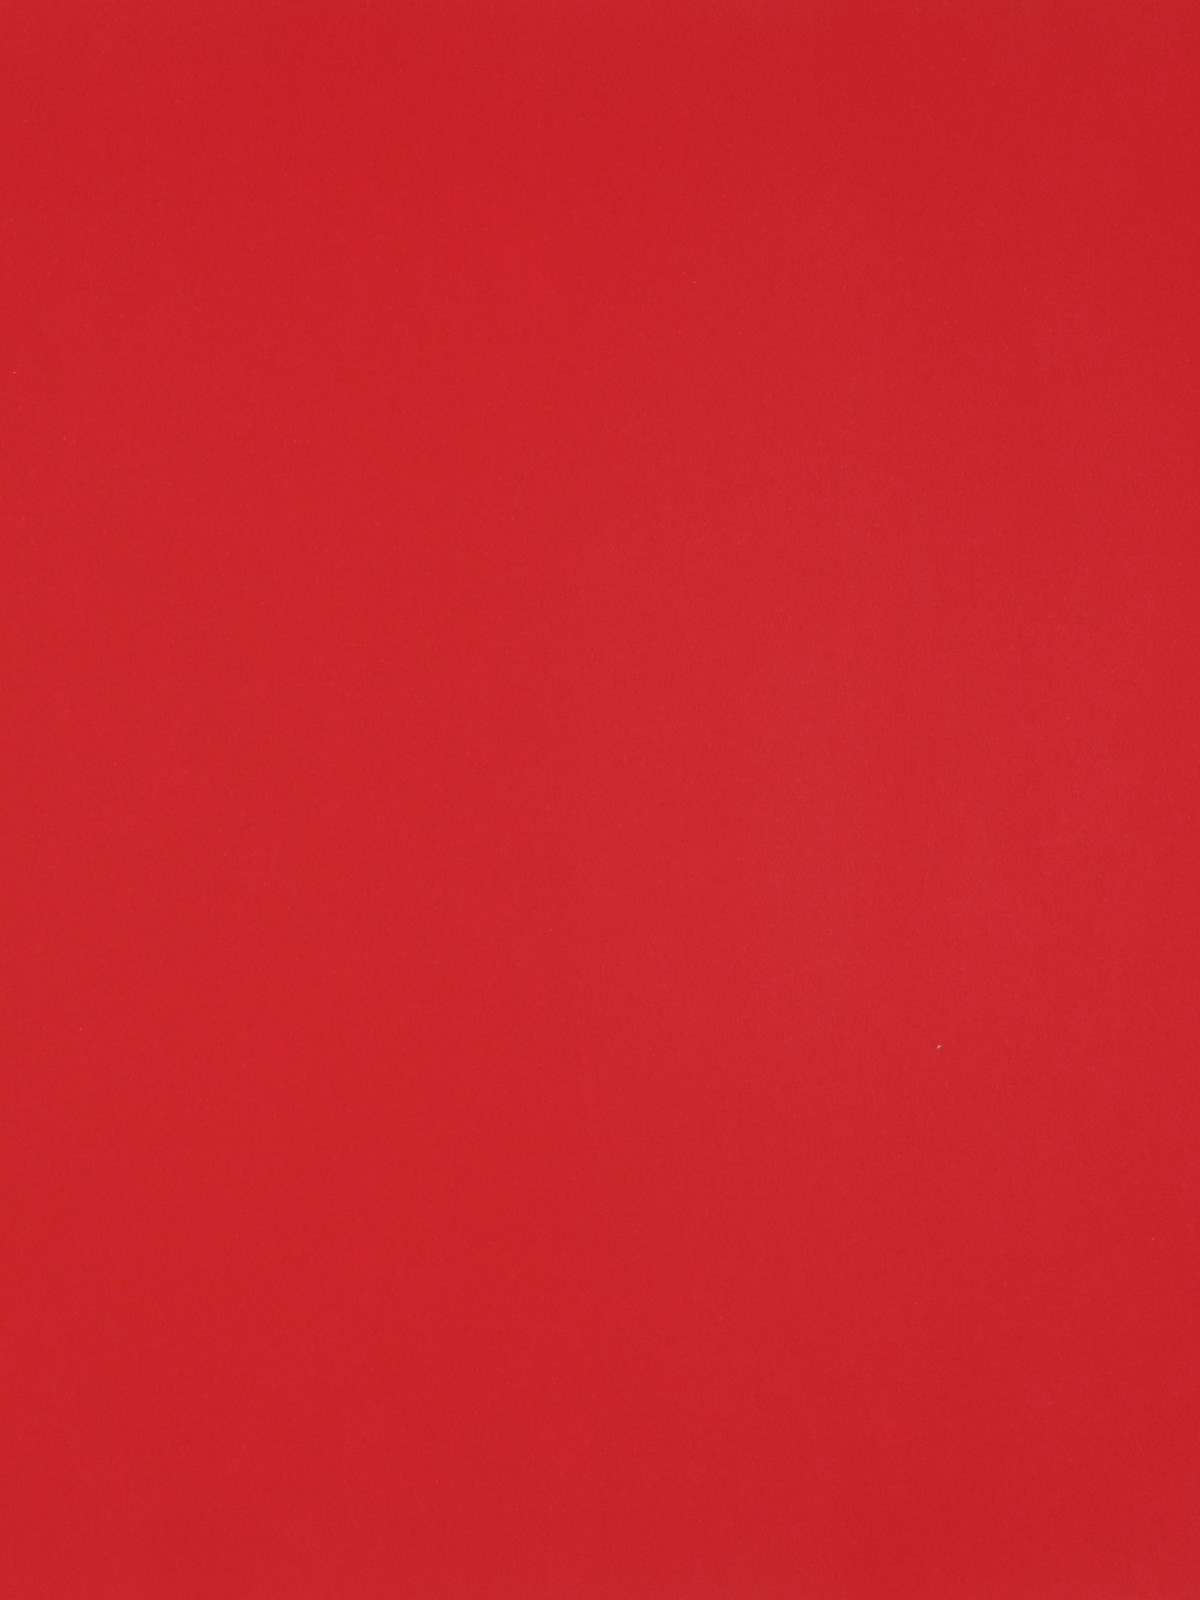 download plain red wallpaper gallery